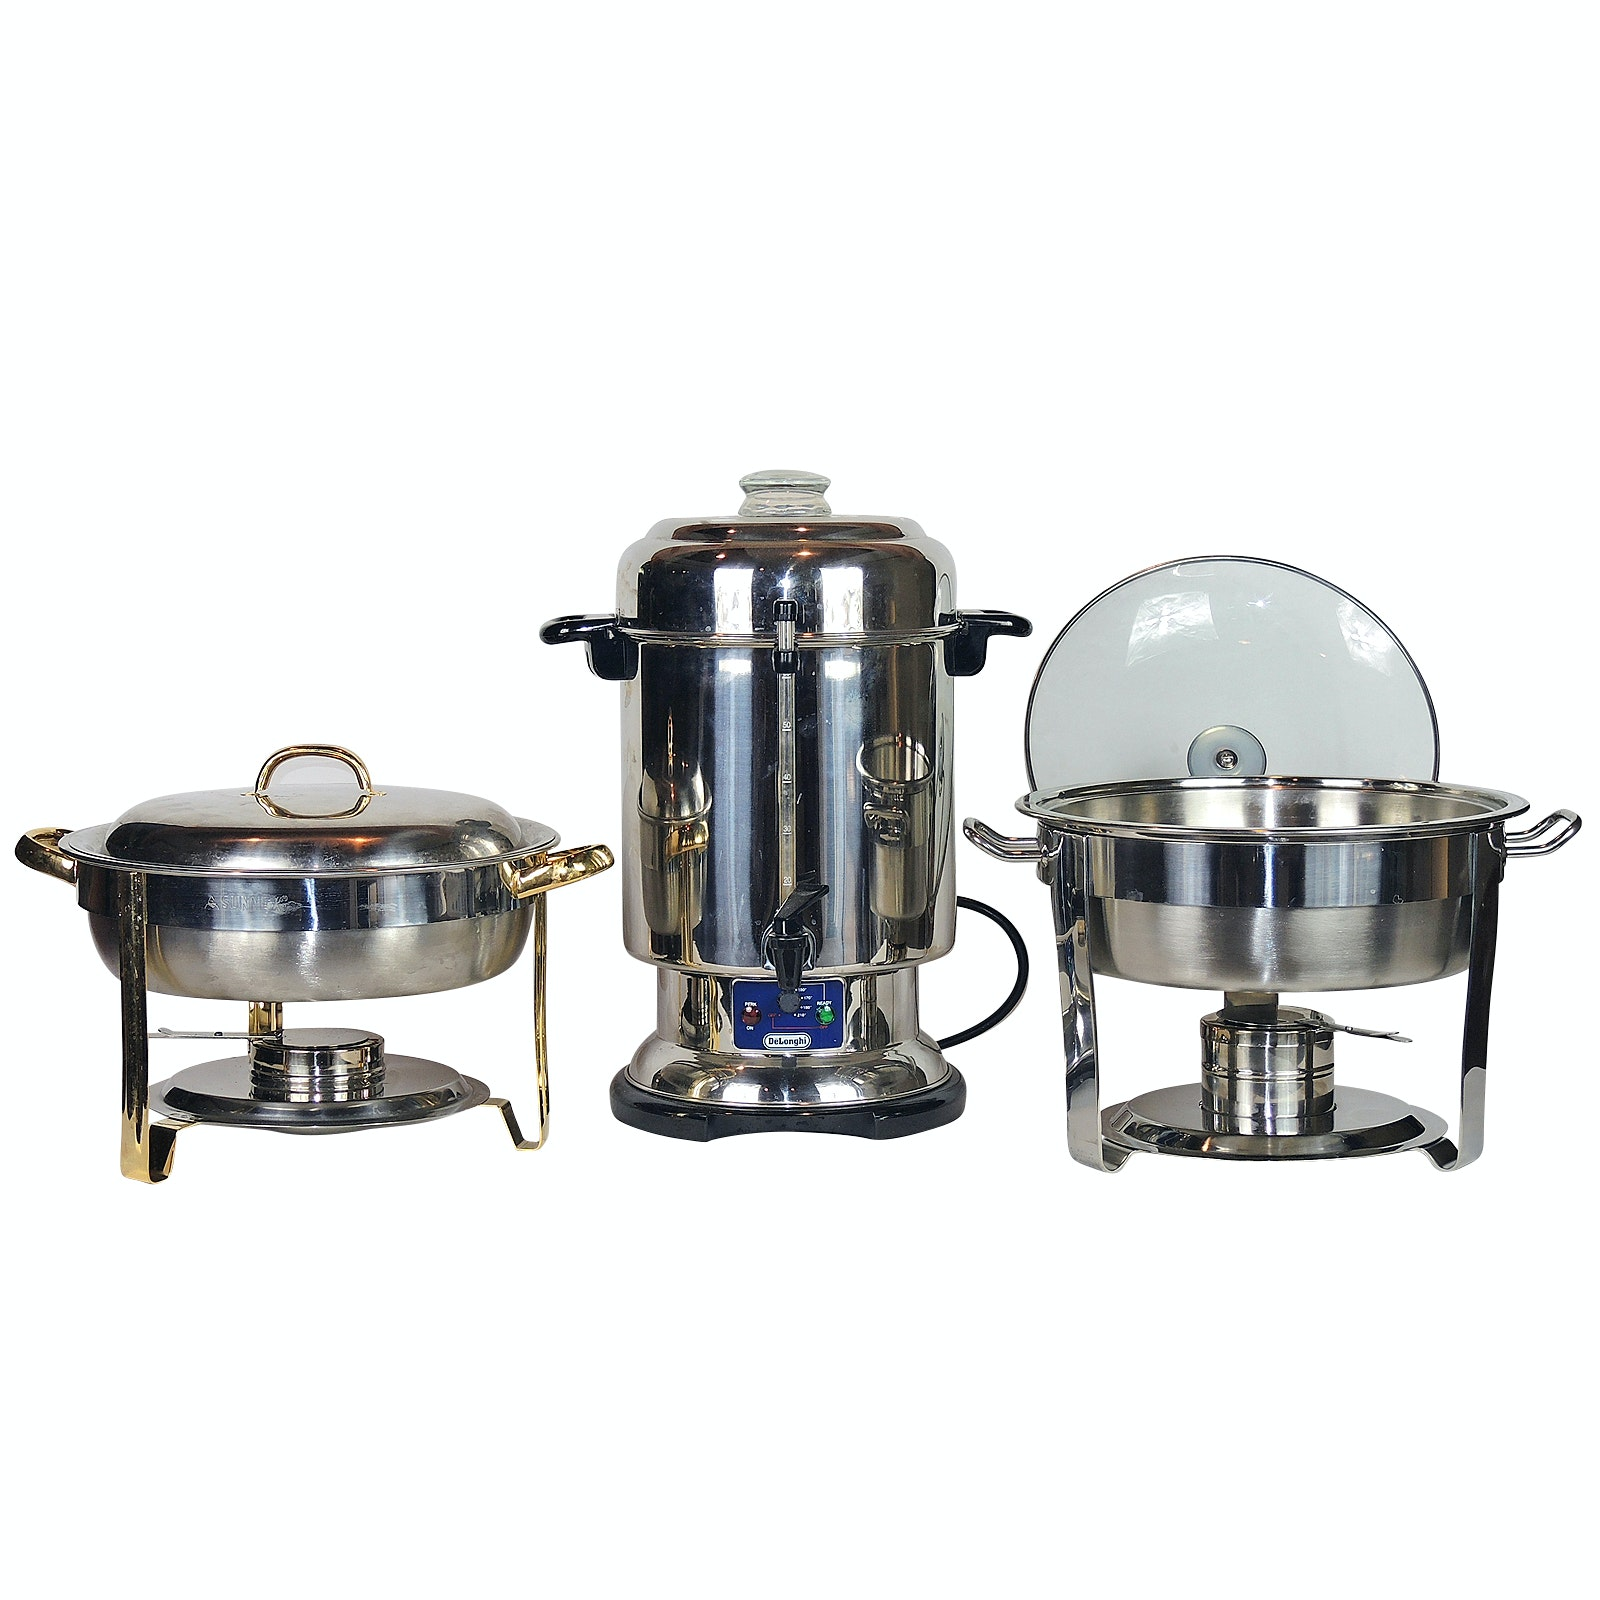 DeLonghi Ultimate Coffee Urn and Stainless Steel Chaffing Dishes